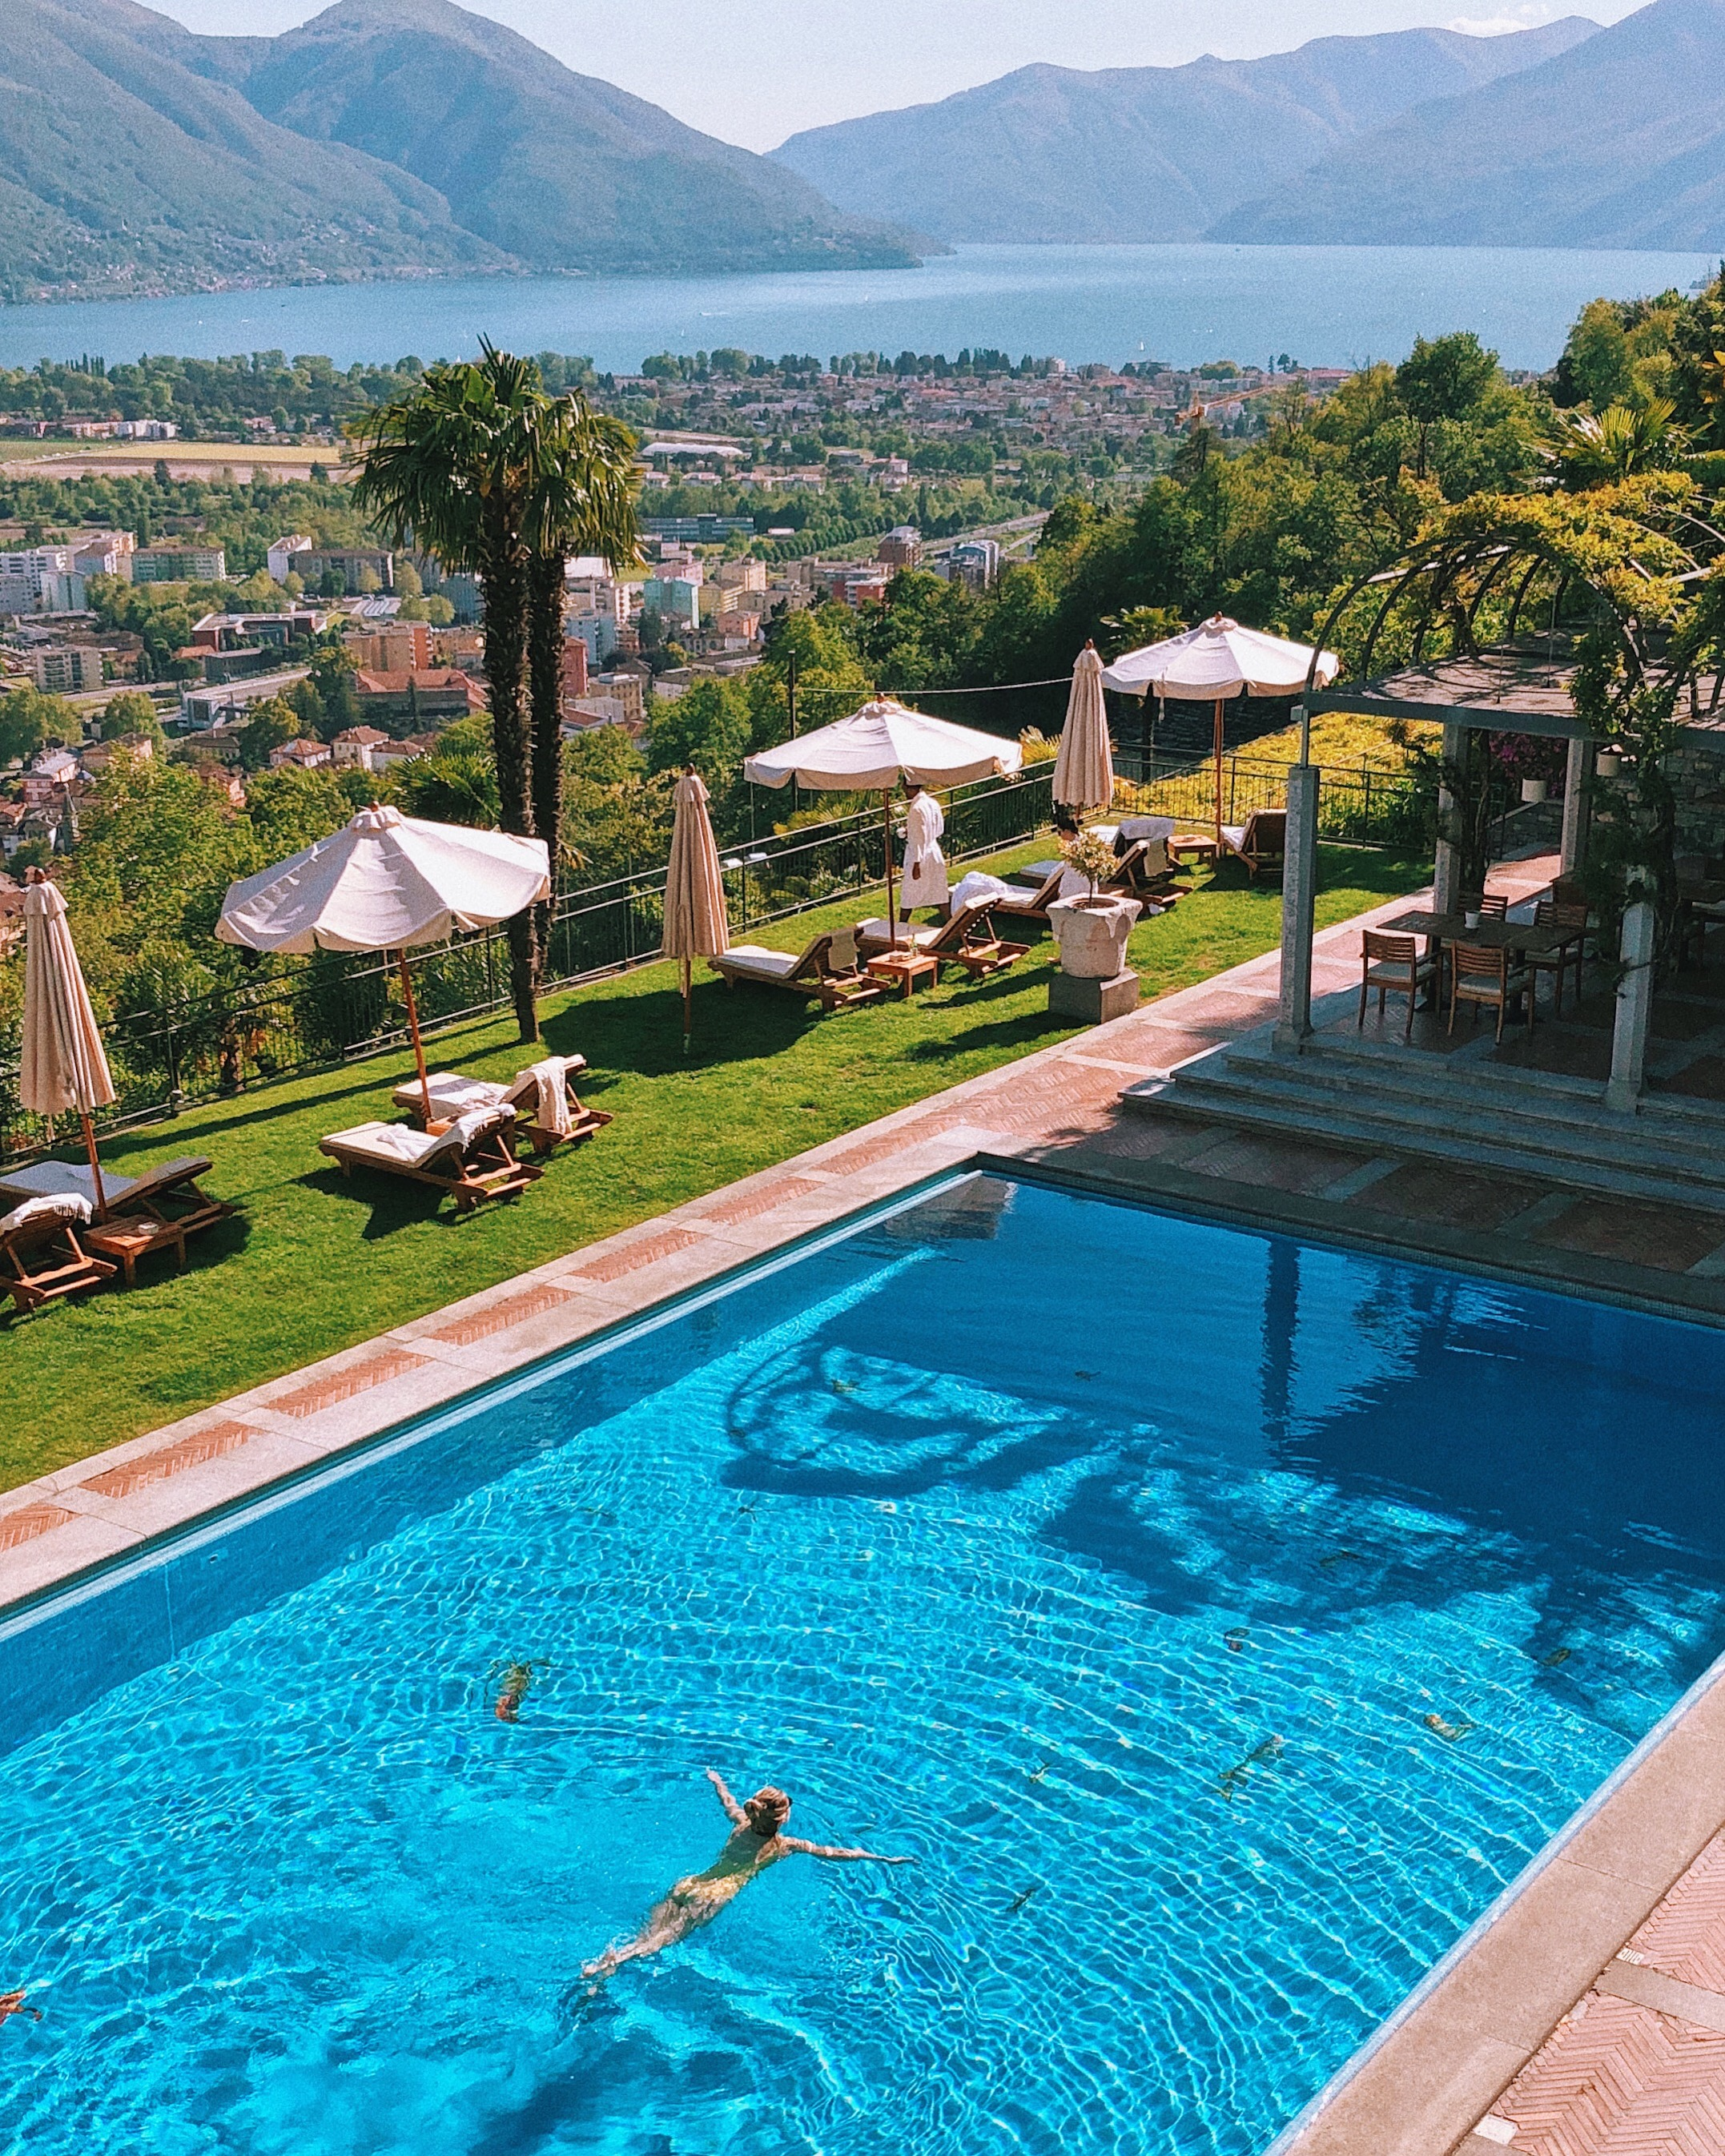 Swimming pool at Villa Orselina hotel in Locarno Switzerland